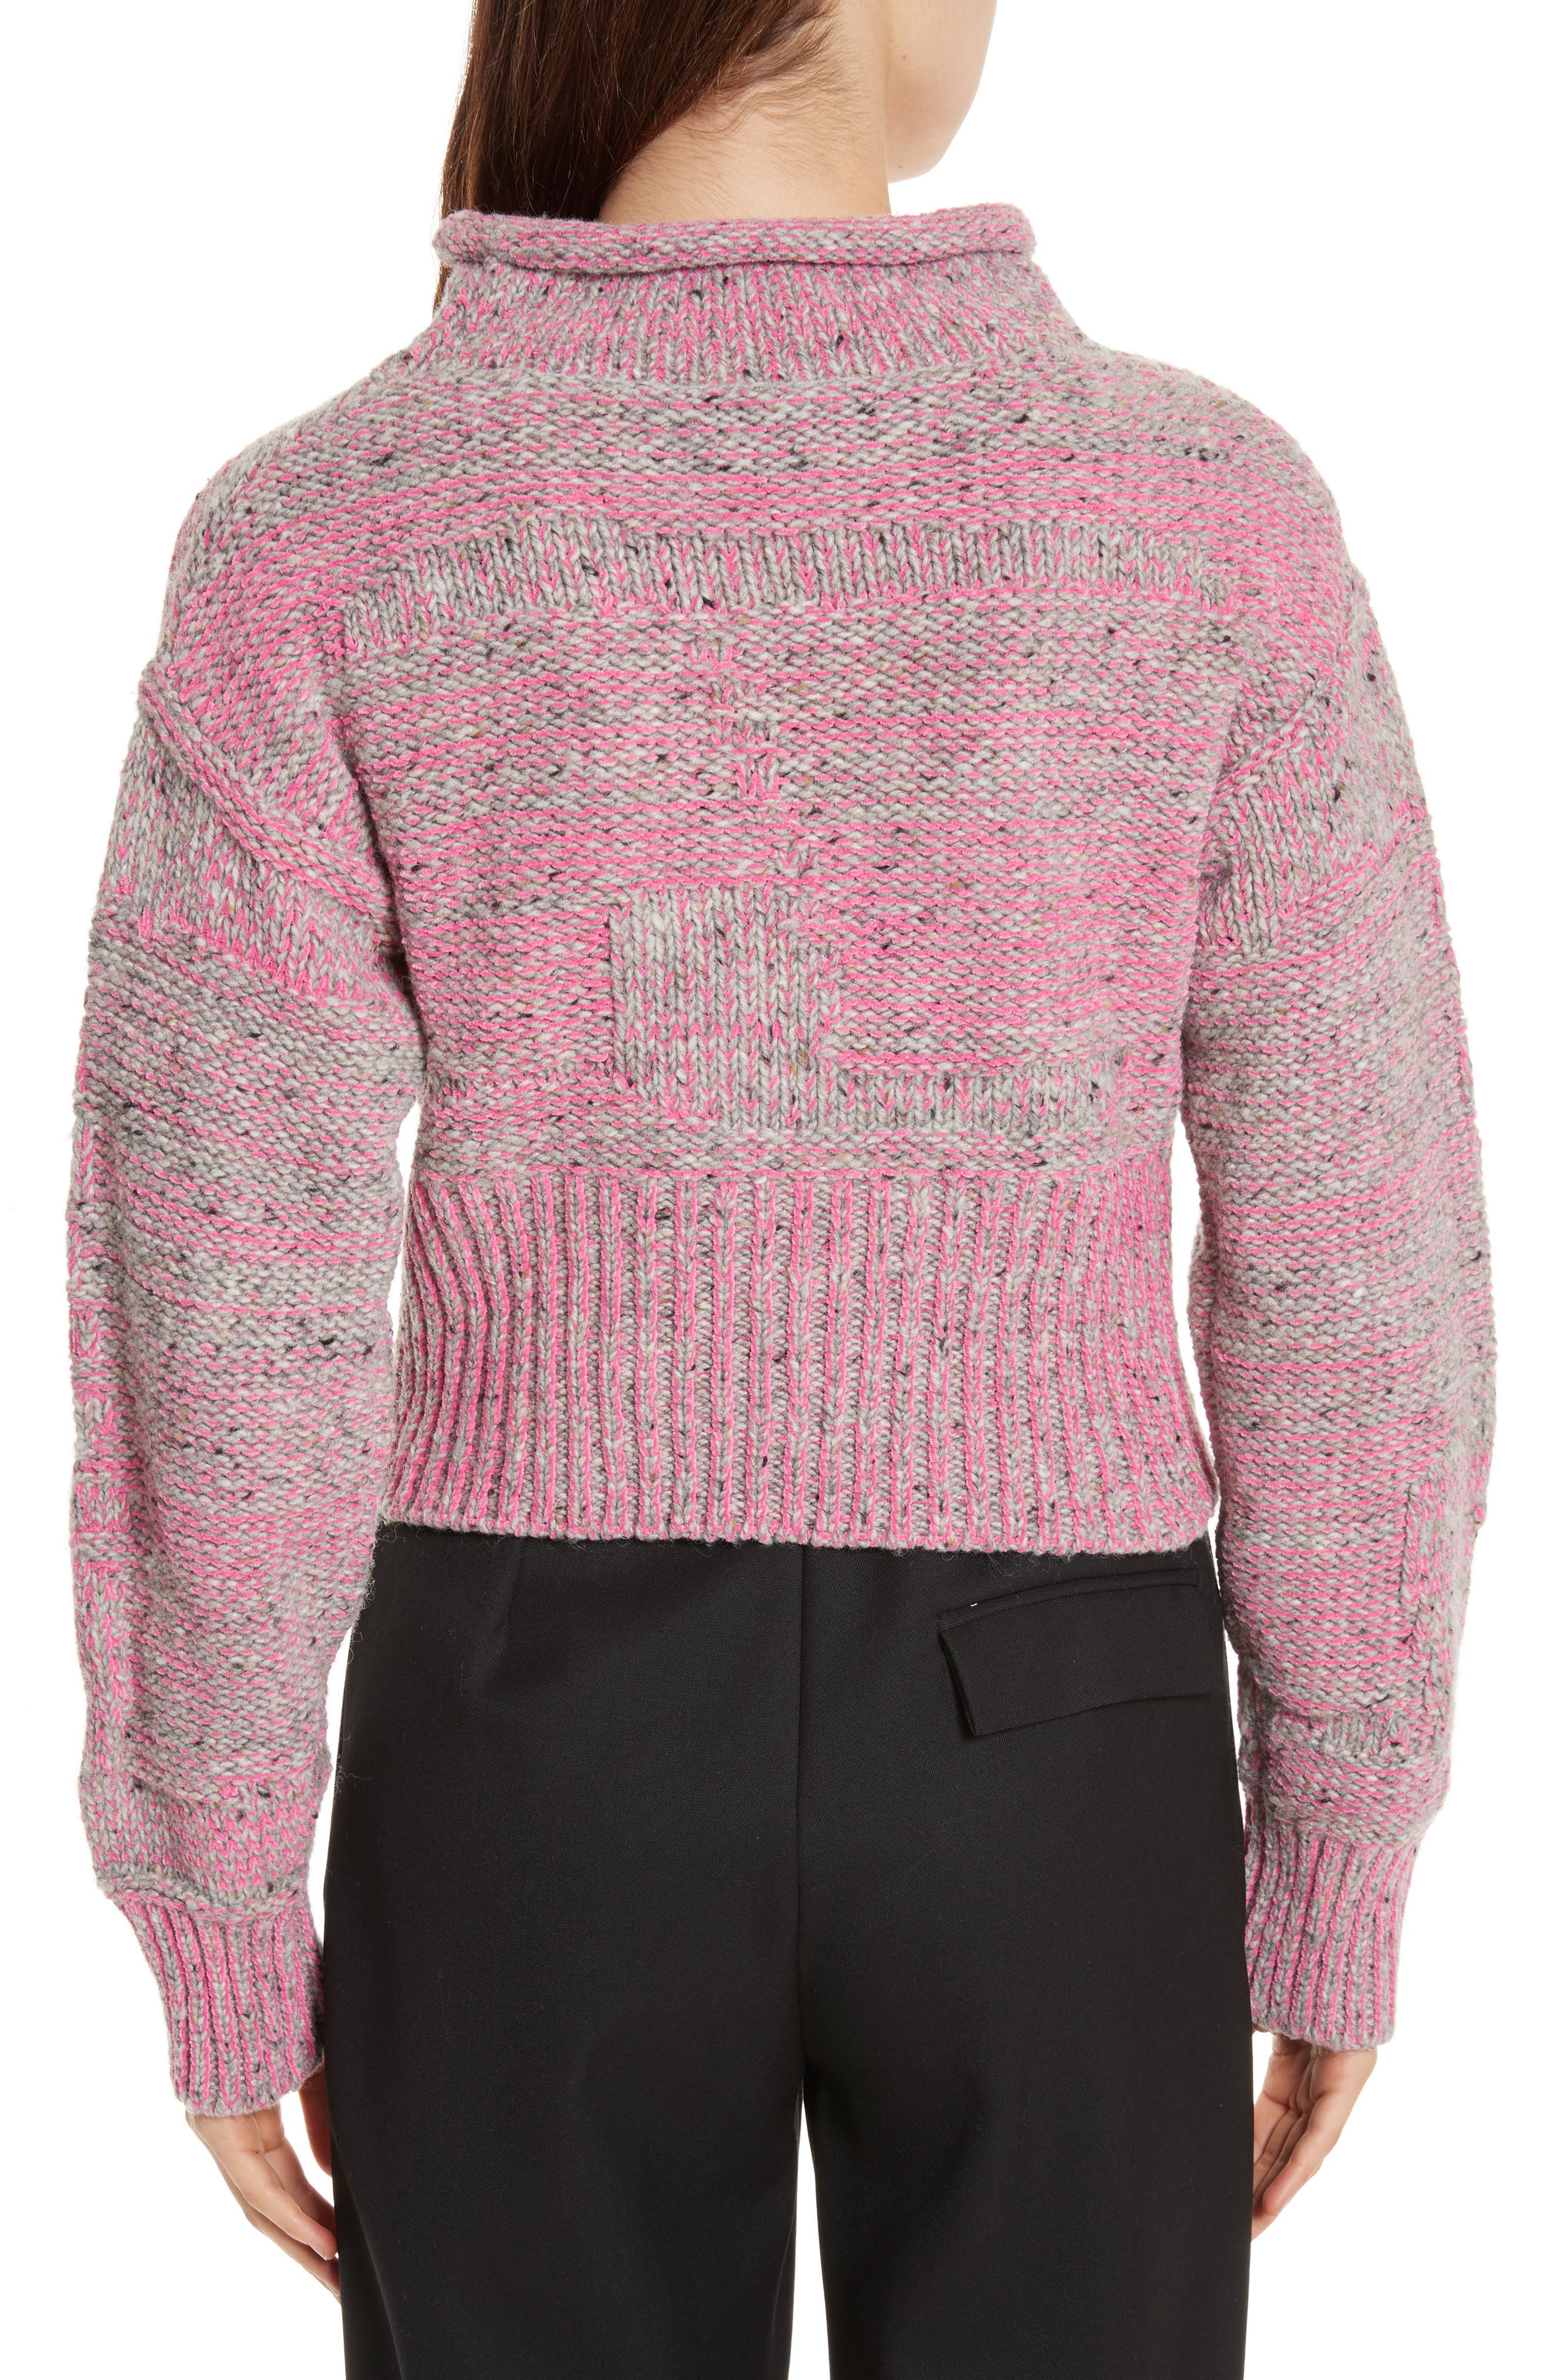 Wool Blend Funnel Neck Sweater,                             Alternate thumbnail 2, color,                             Candy Pink